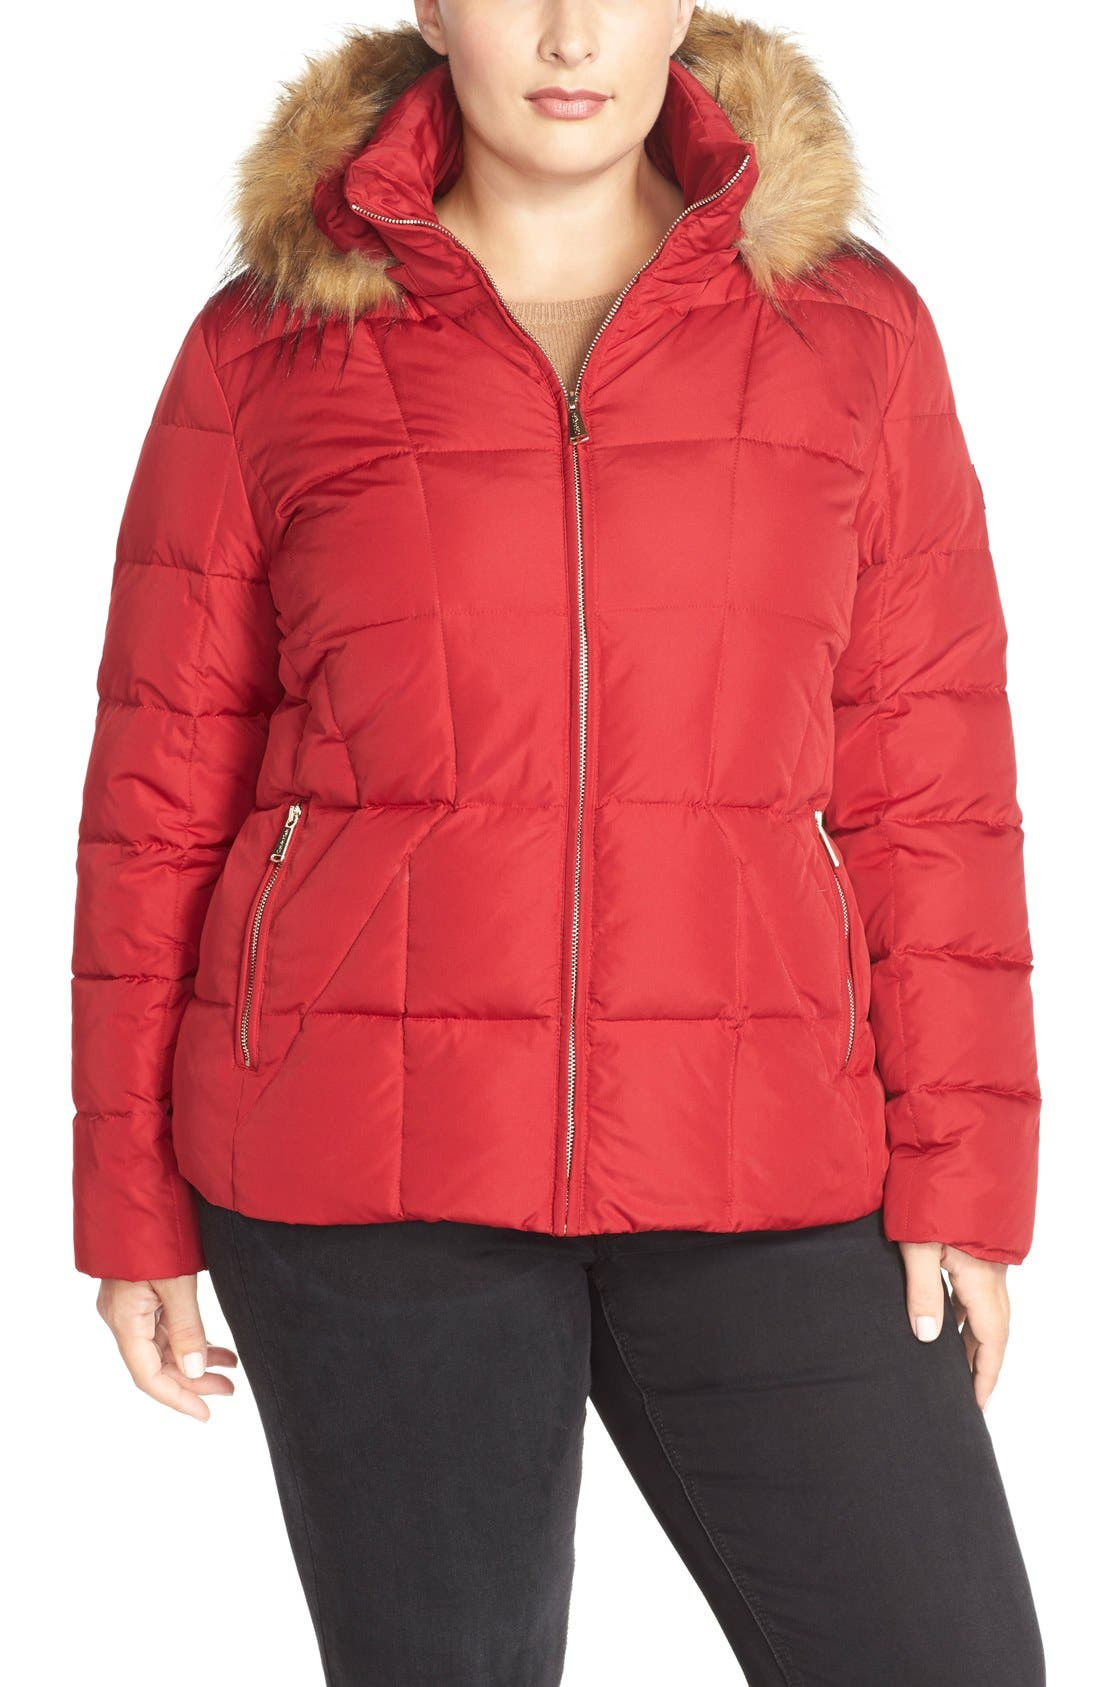 Alternate Image 1 Selected - Calvin Klein Hooded Down & Feather Fill Jacket with Faux Fur Trim (Plus Size)